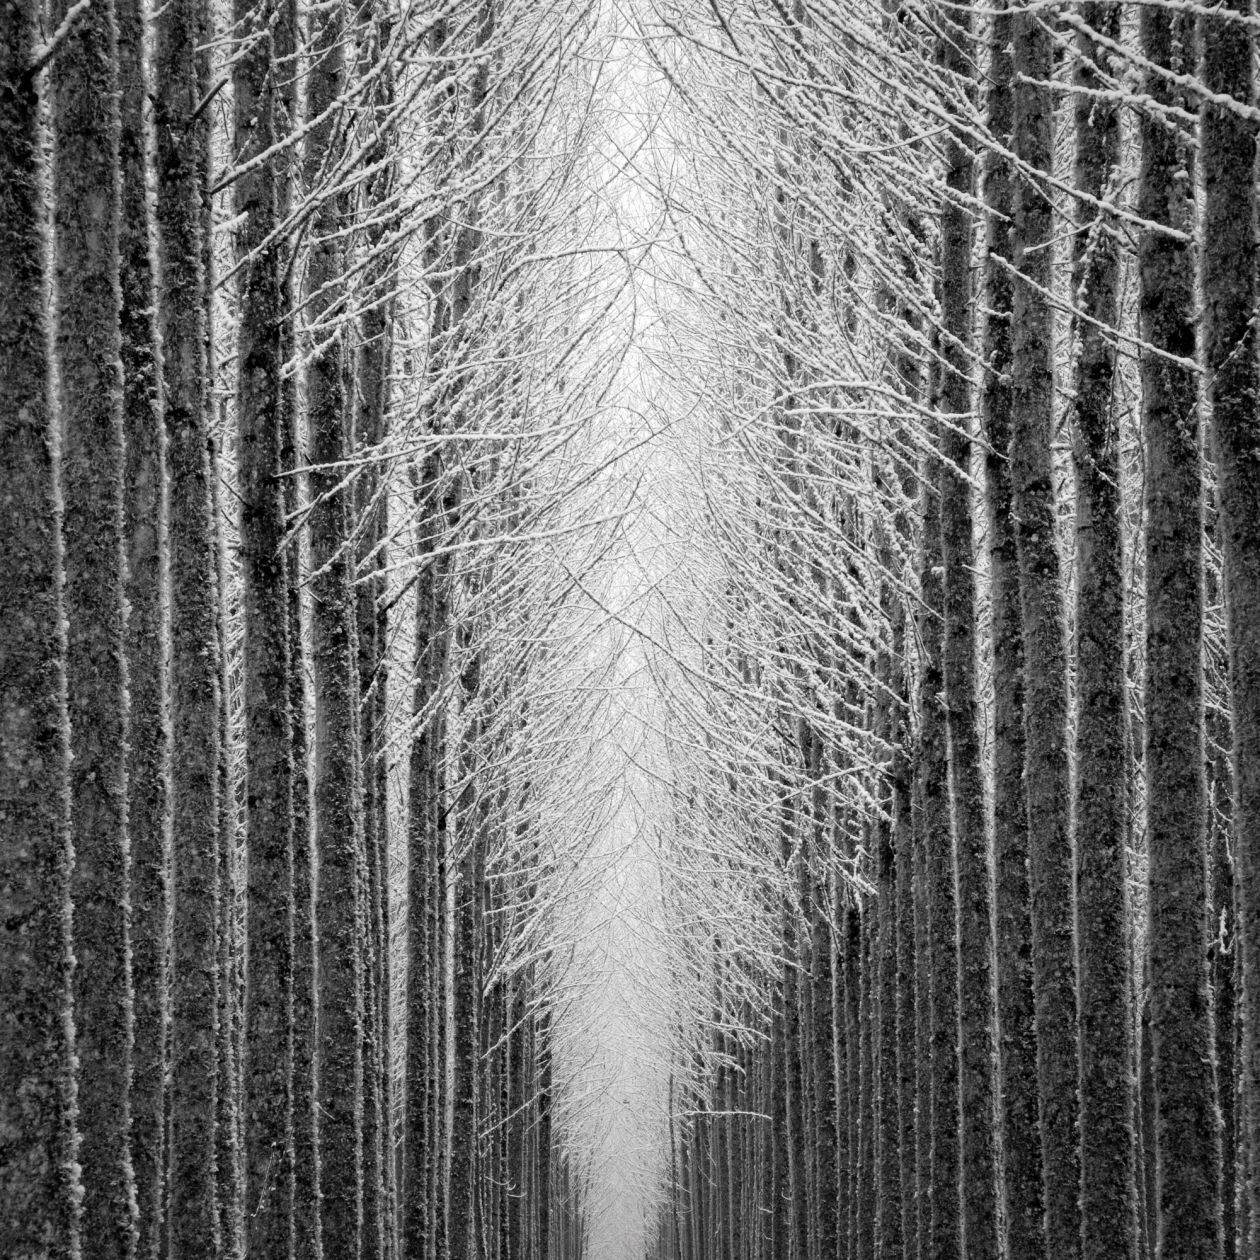 Tree Cathedral (2007) by Jeffrey Conley